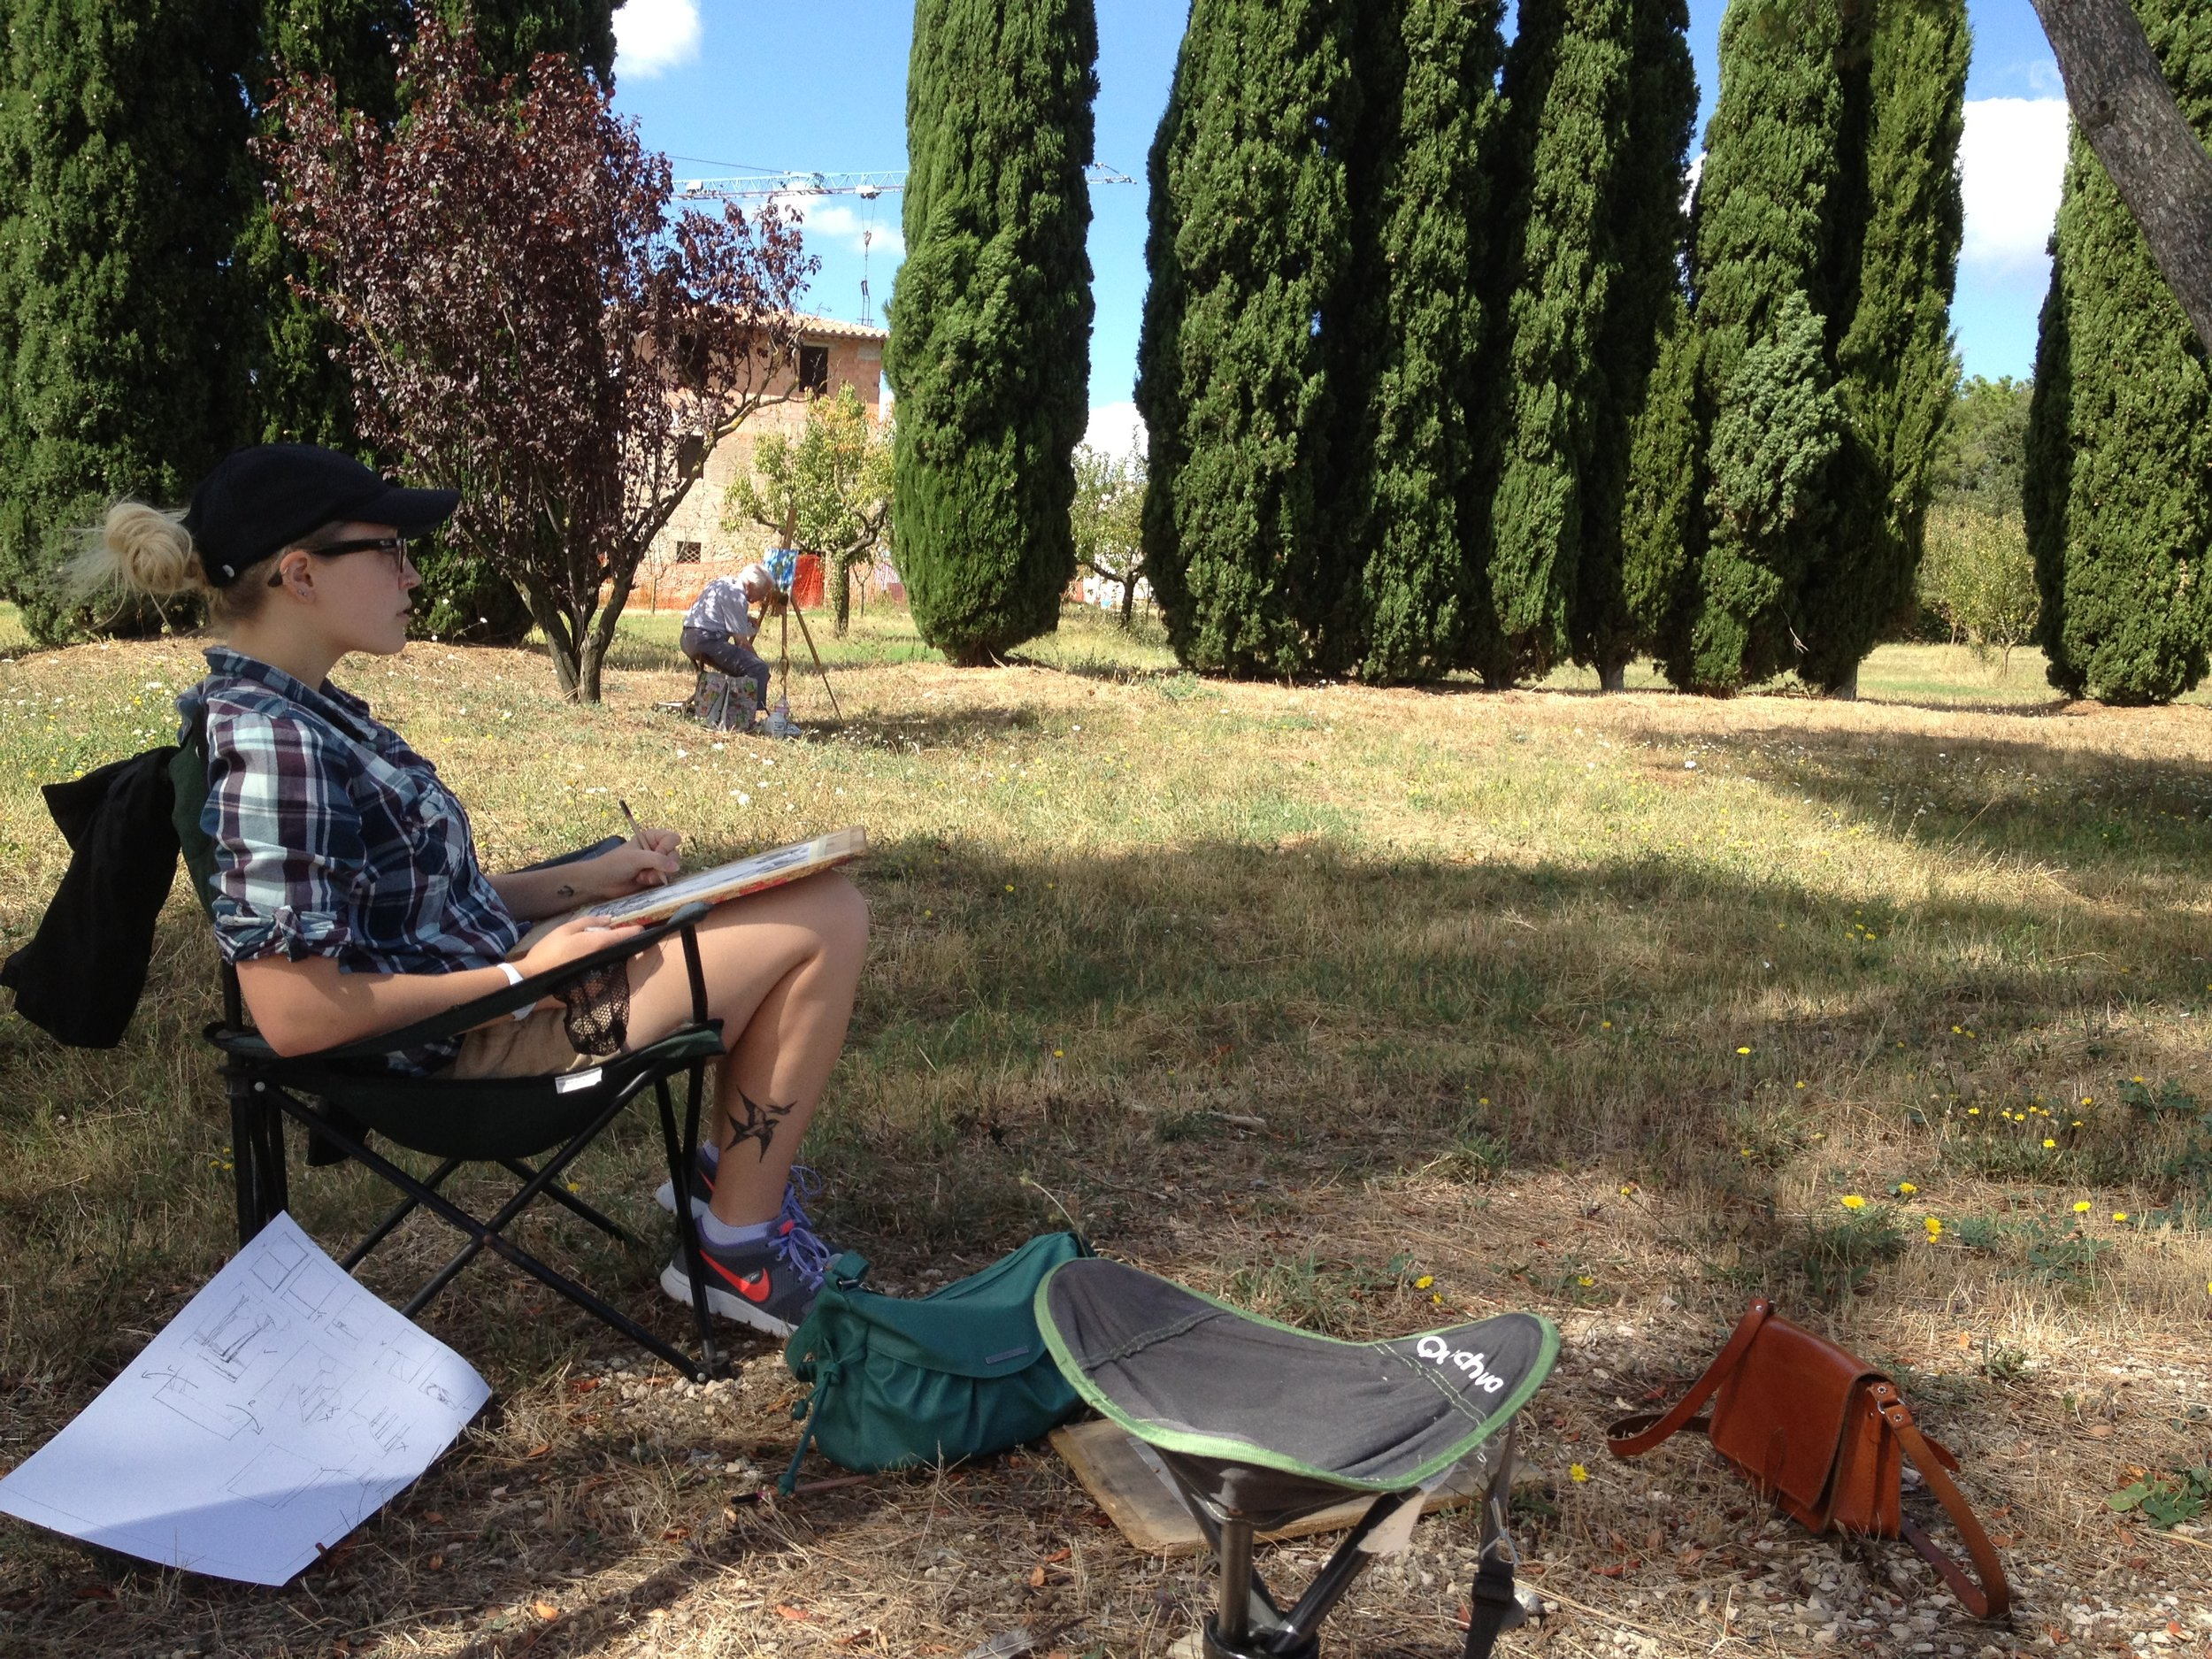 Plein Air | The Travelling Artisan